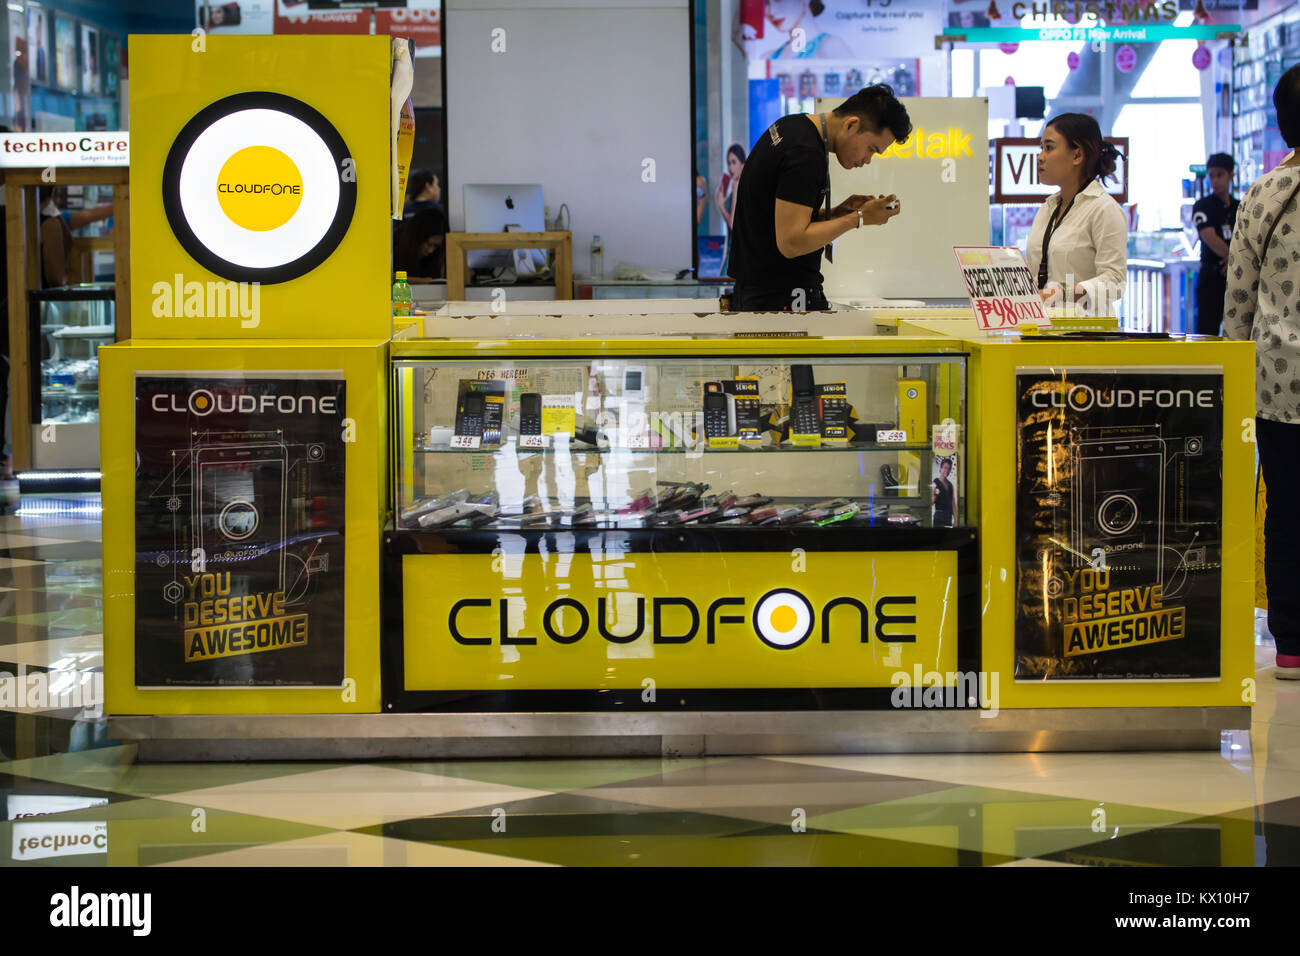 Cloudfone - a popular Innovative mobile phone  company taking a large share of business within the Philippine  market. - Stock Image